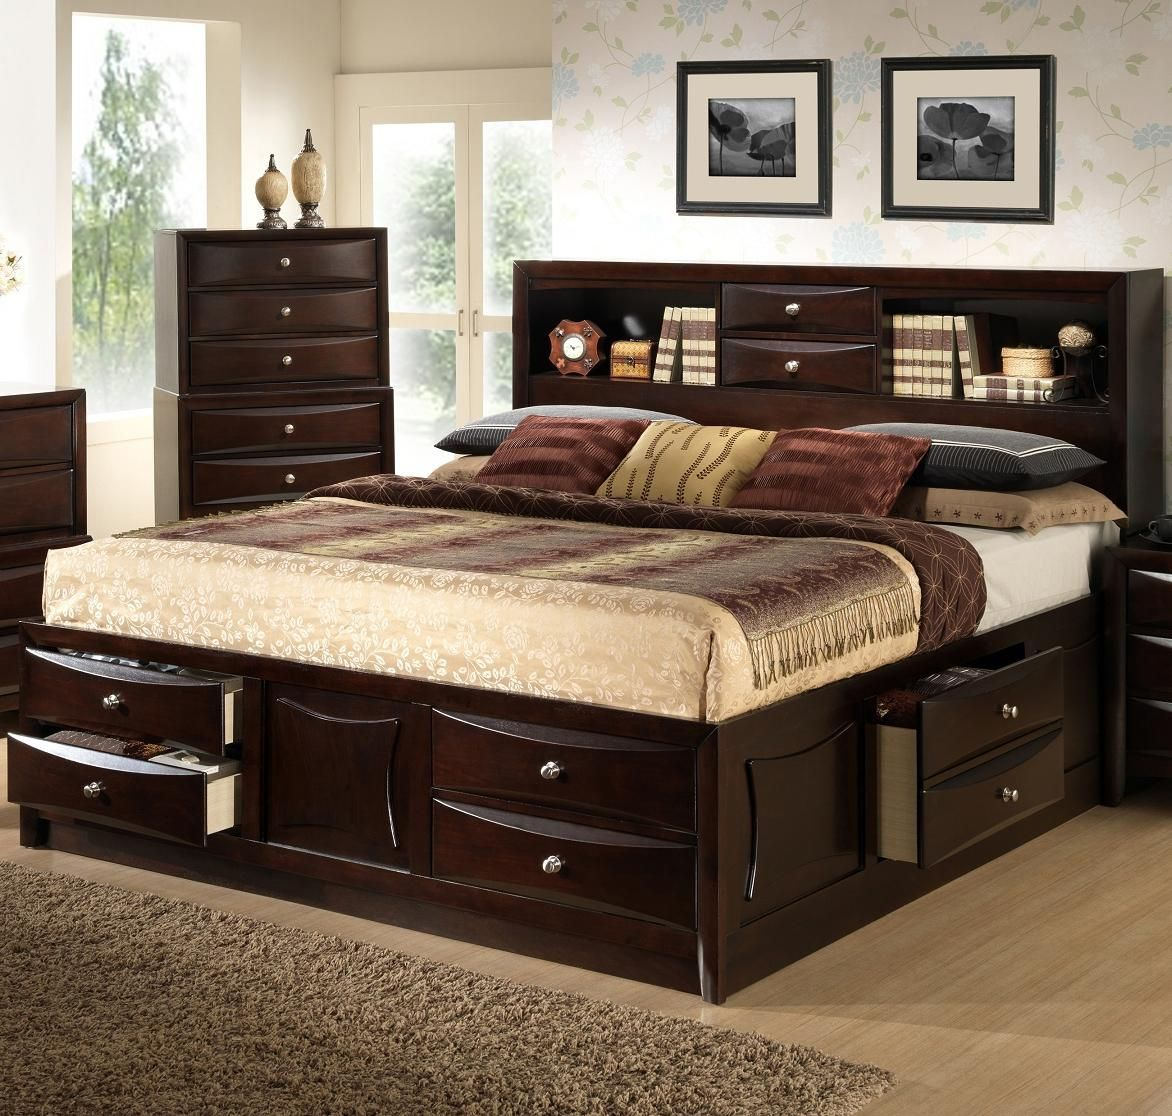 Storage Bed Queen C0172 Queen Storage Bed By Lifestyle Bedroom Ideas